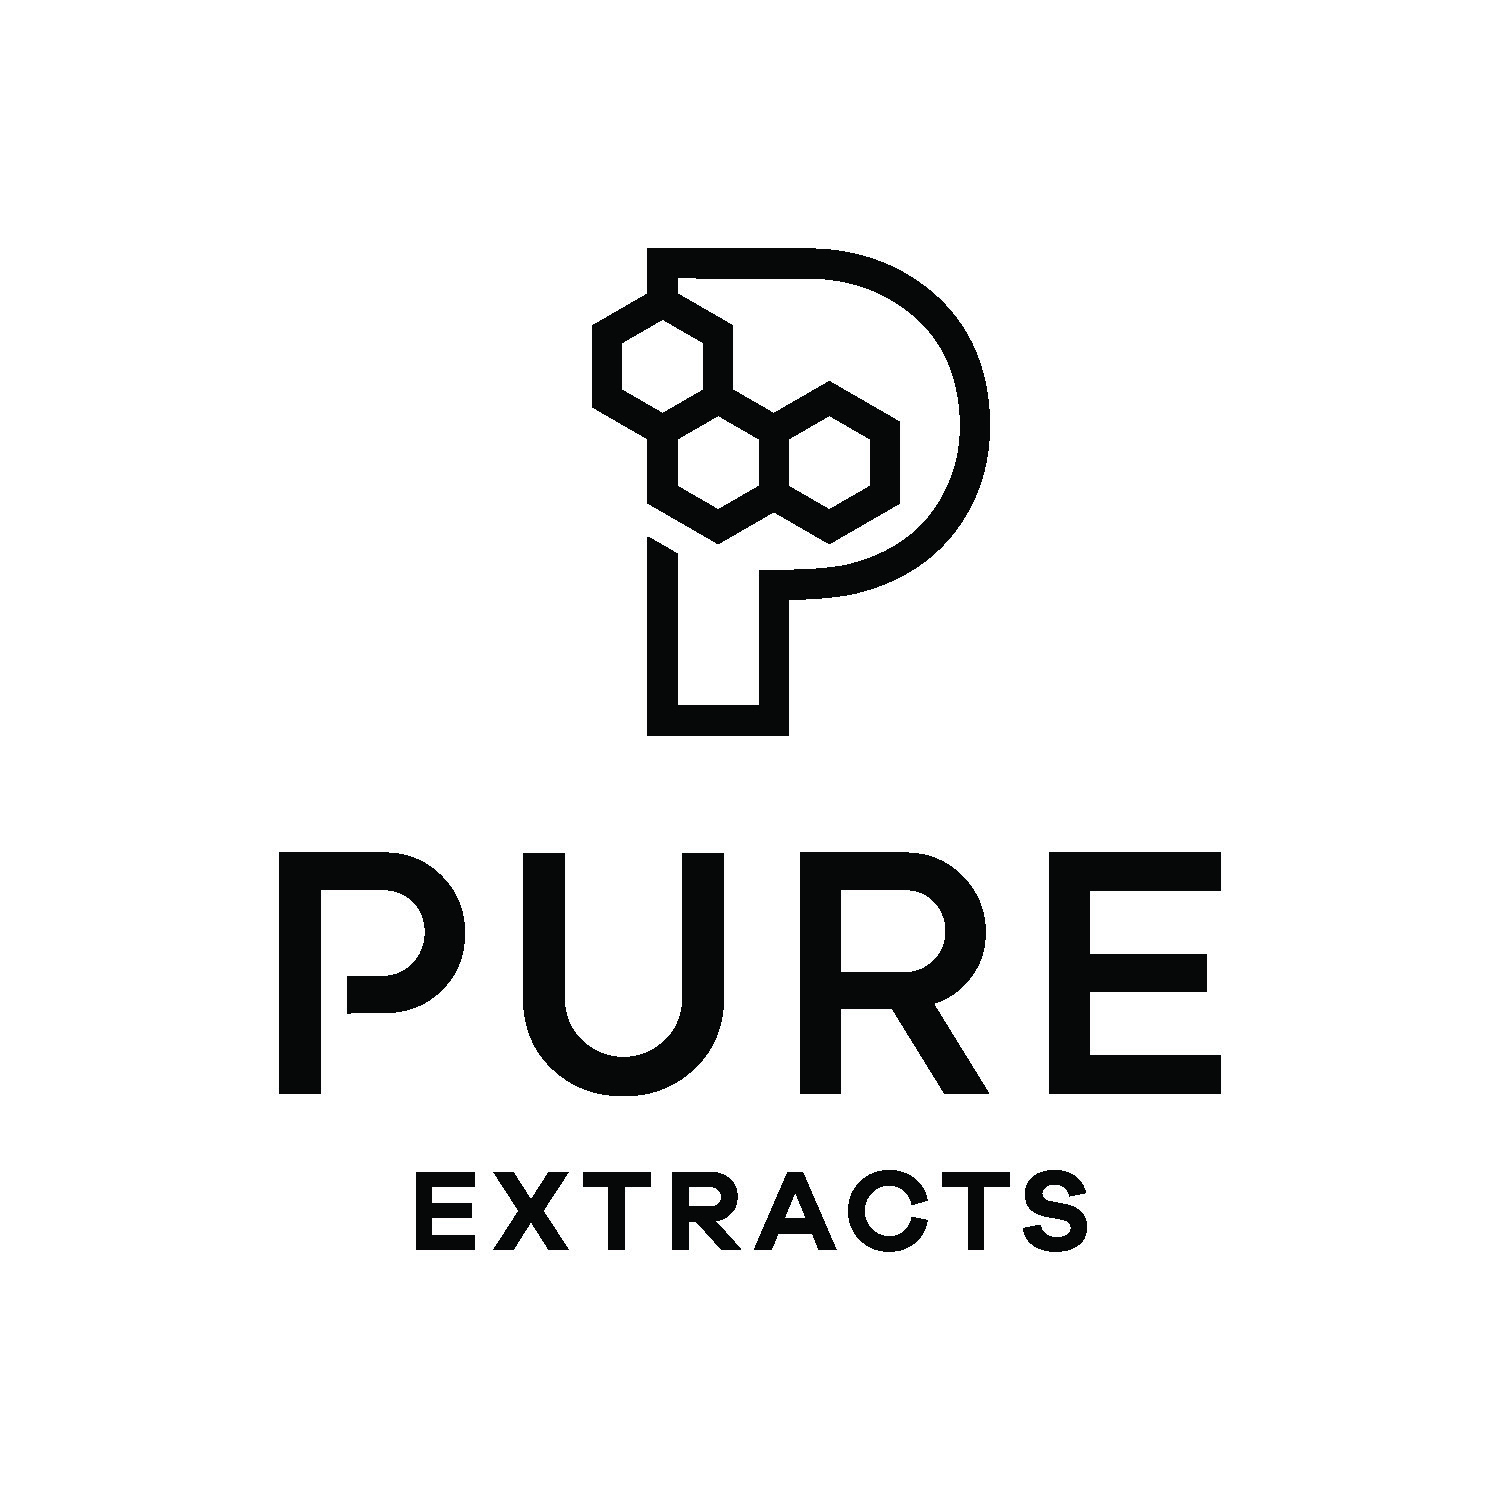 Pure Extracts and Canada House Wellness Group sign agreement to distribute concentrate products through existing provincial distribution channels